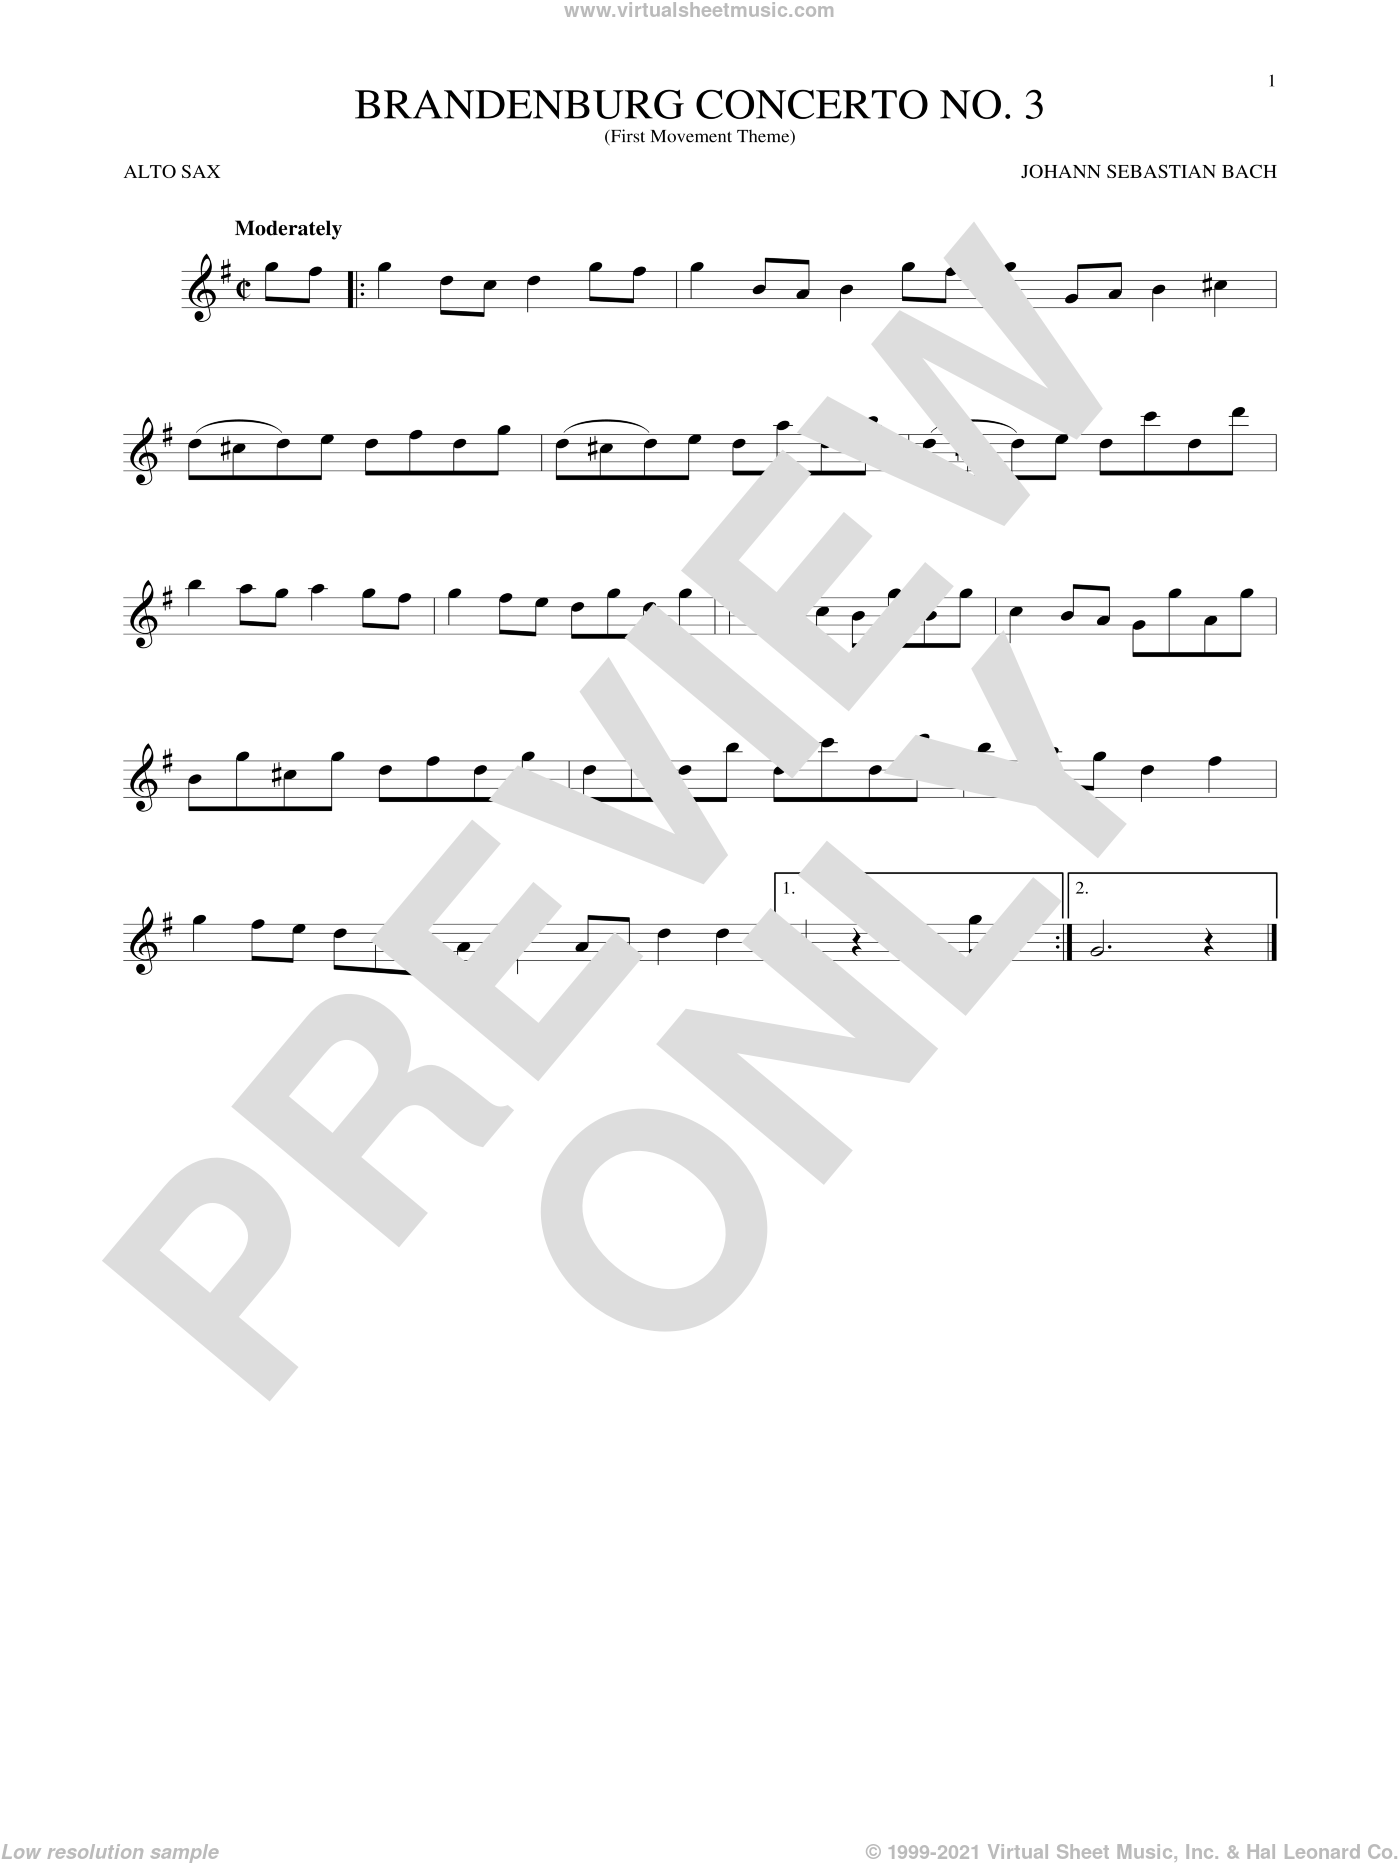 Brandenburg Concerto No. 3 sheet music for alto saxophone solo by Johann Sebastian Bach, classical score, intermediate skill level